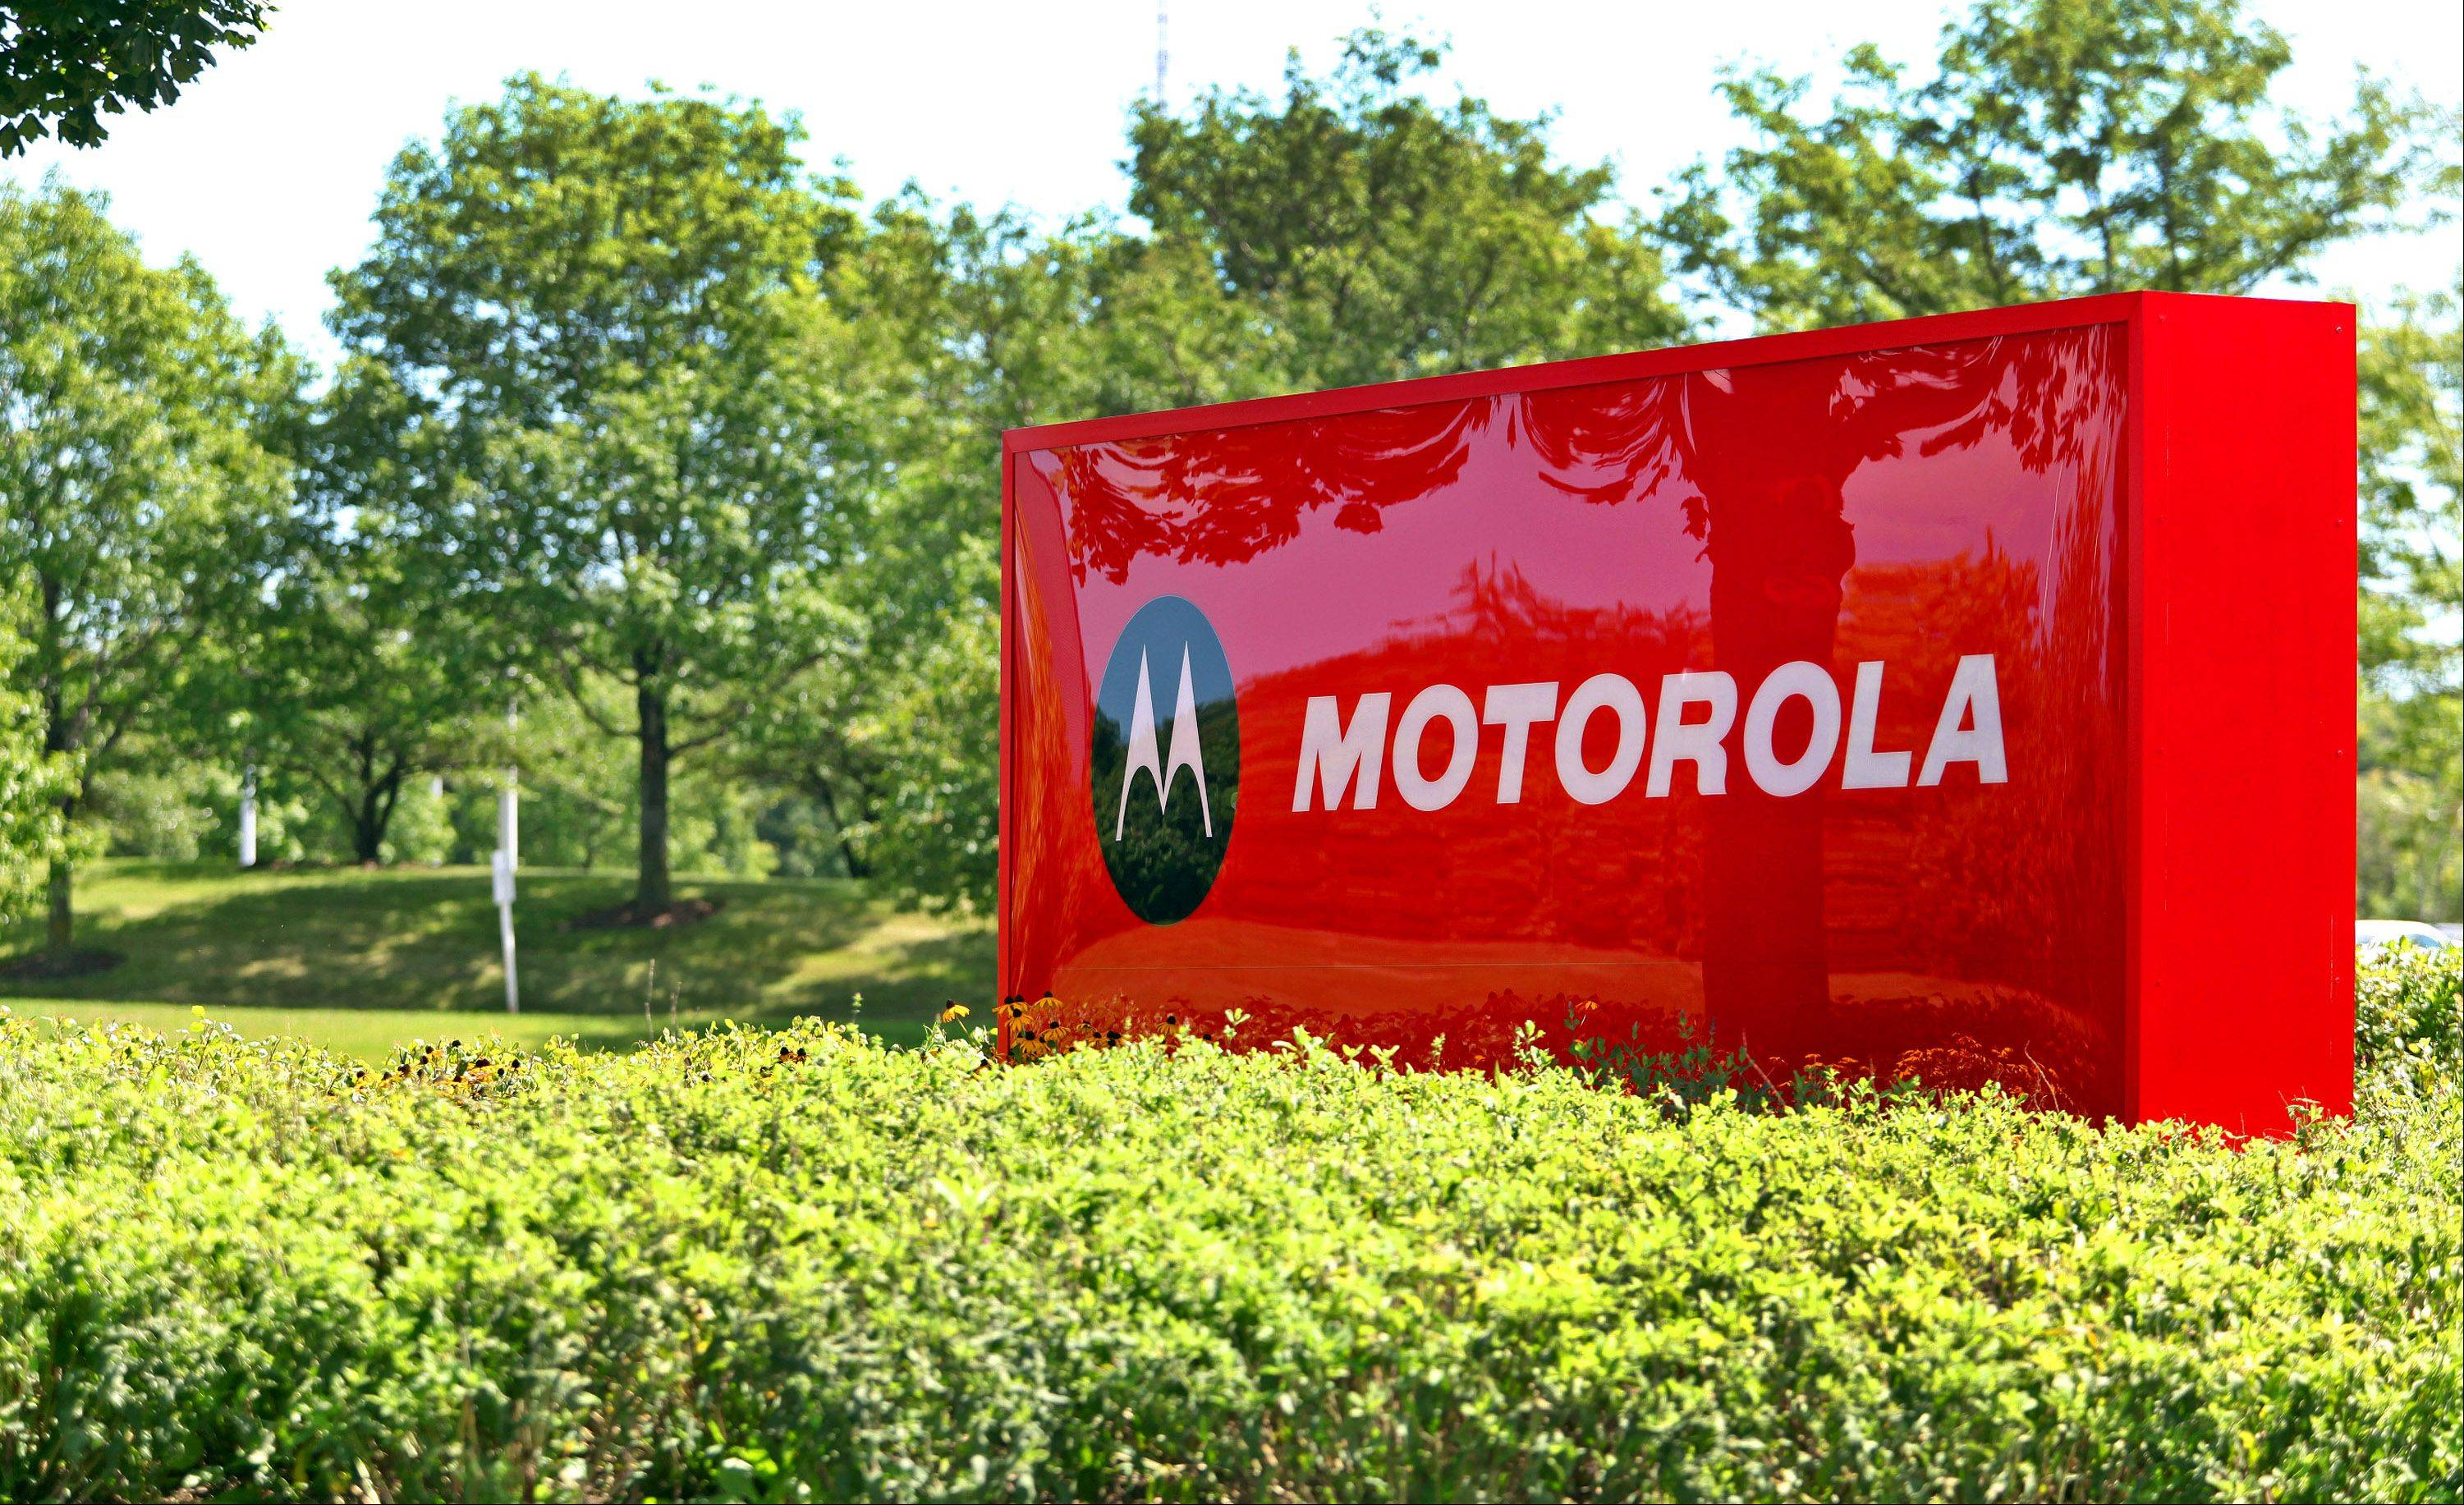 Motorola Mobility Holdings in Libertyville